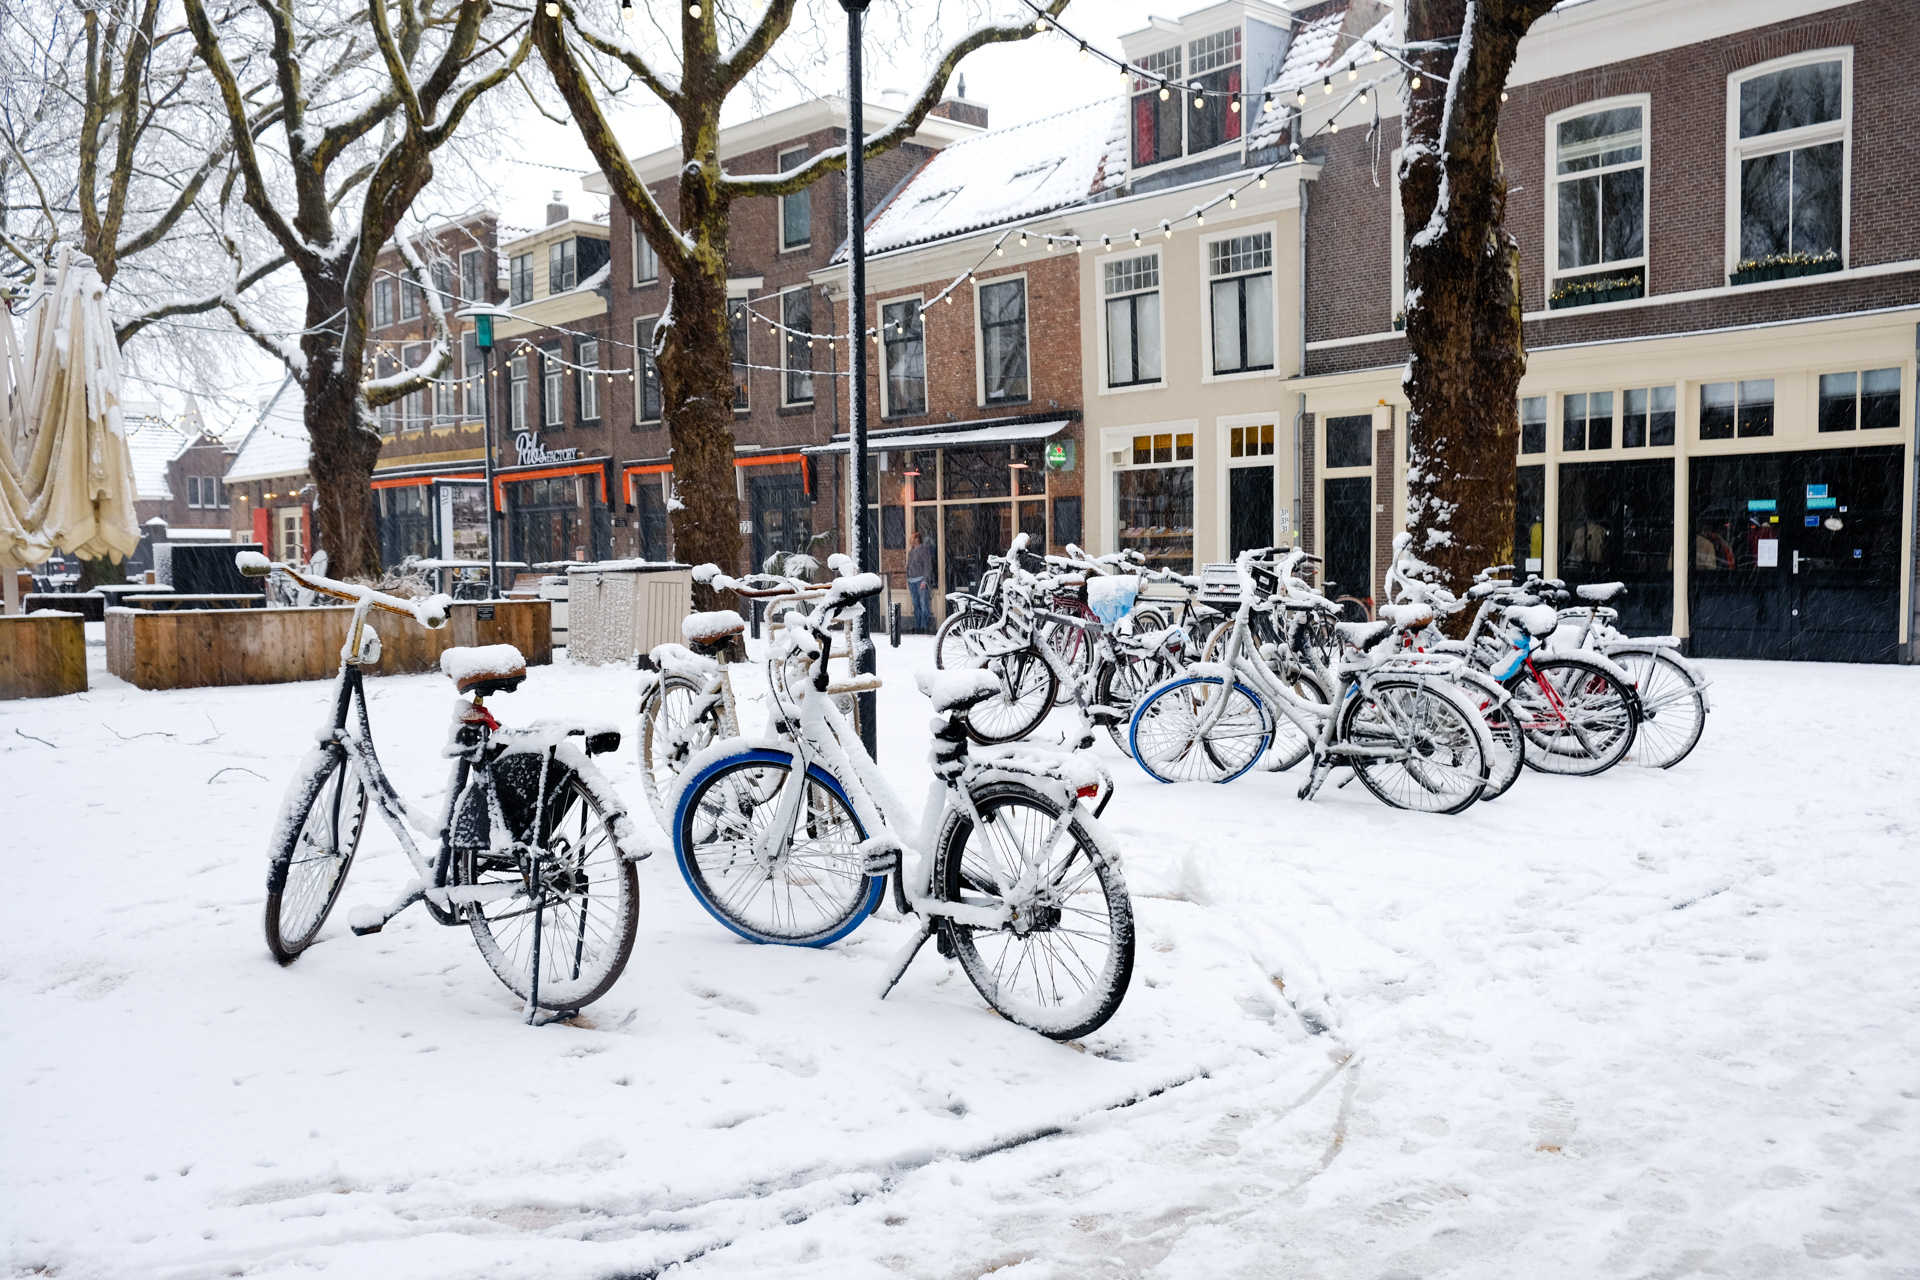 Snow-covered bikes